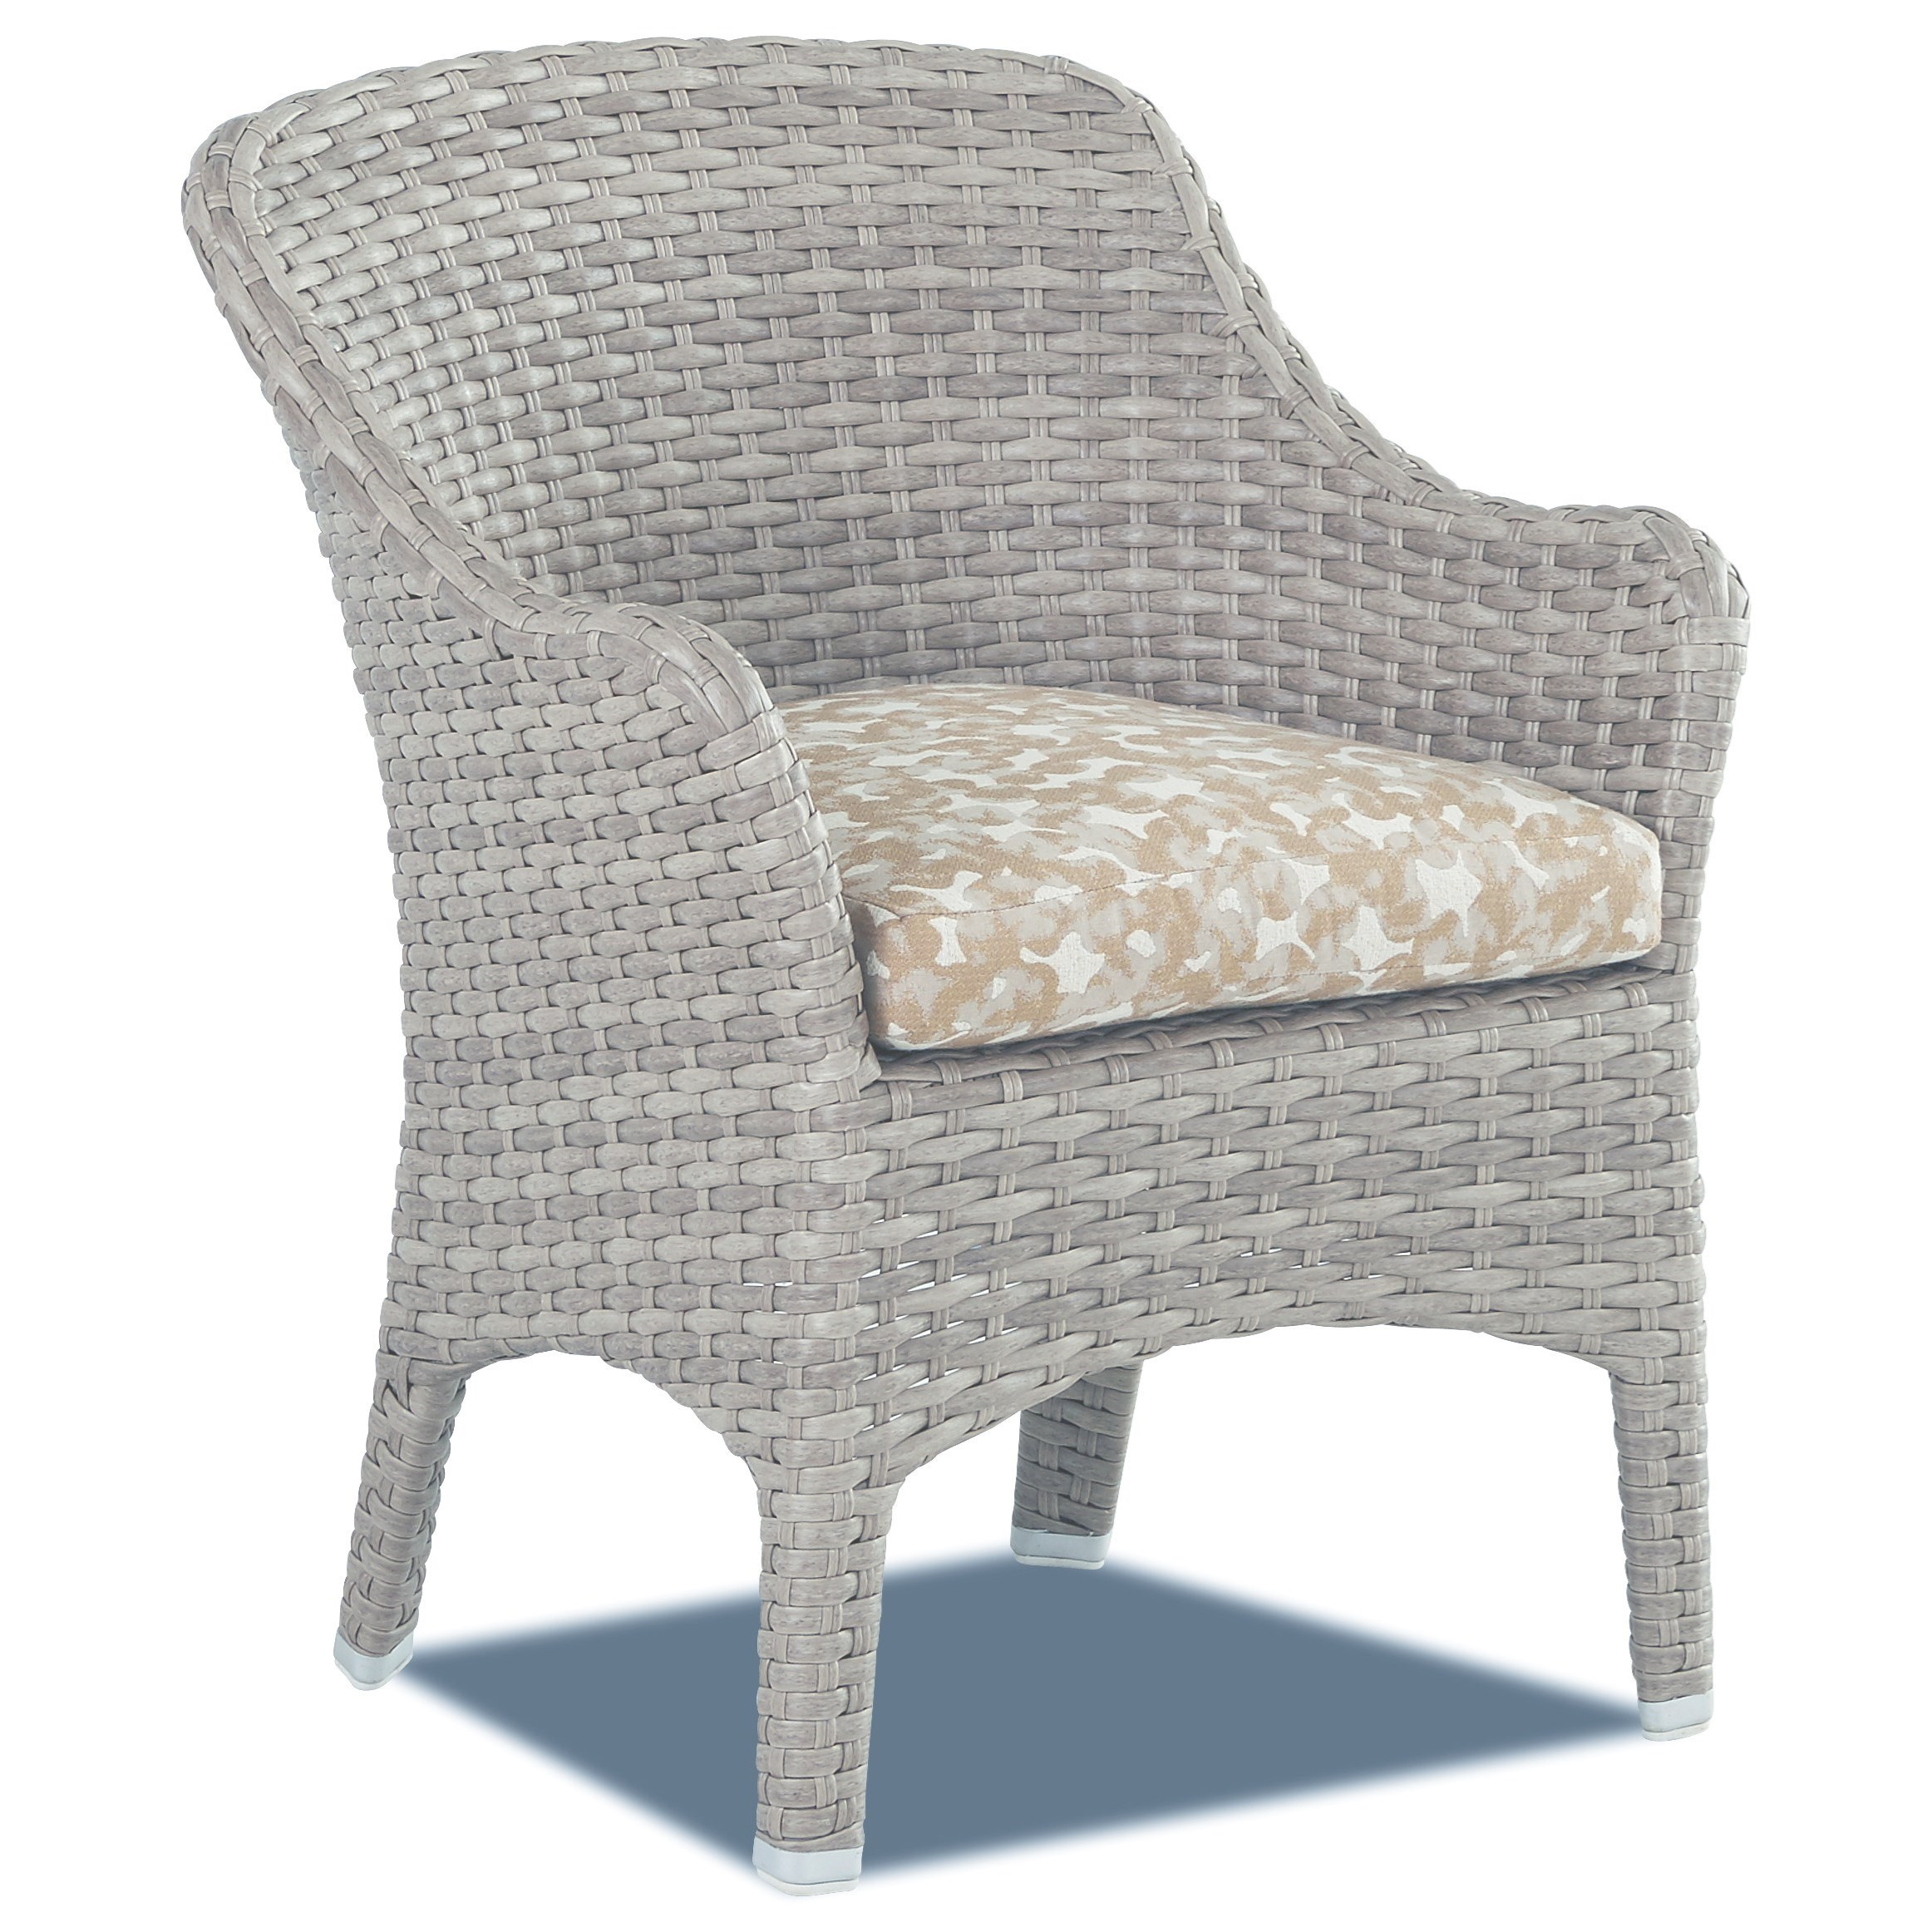 Mesa 2 Pack Dining Chair with Drainable Cushion by Klaussner Outdoor at Nassau Furniture and Mattress